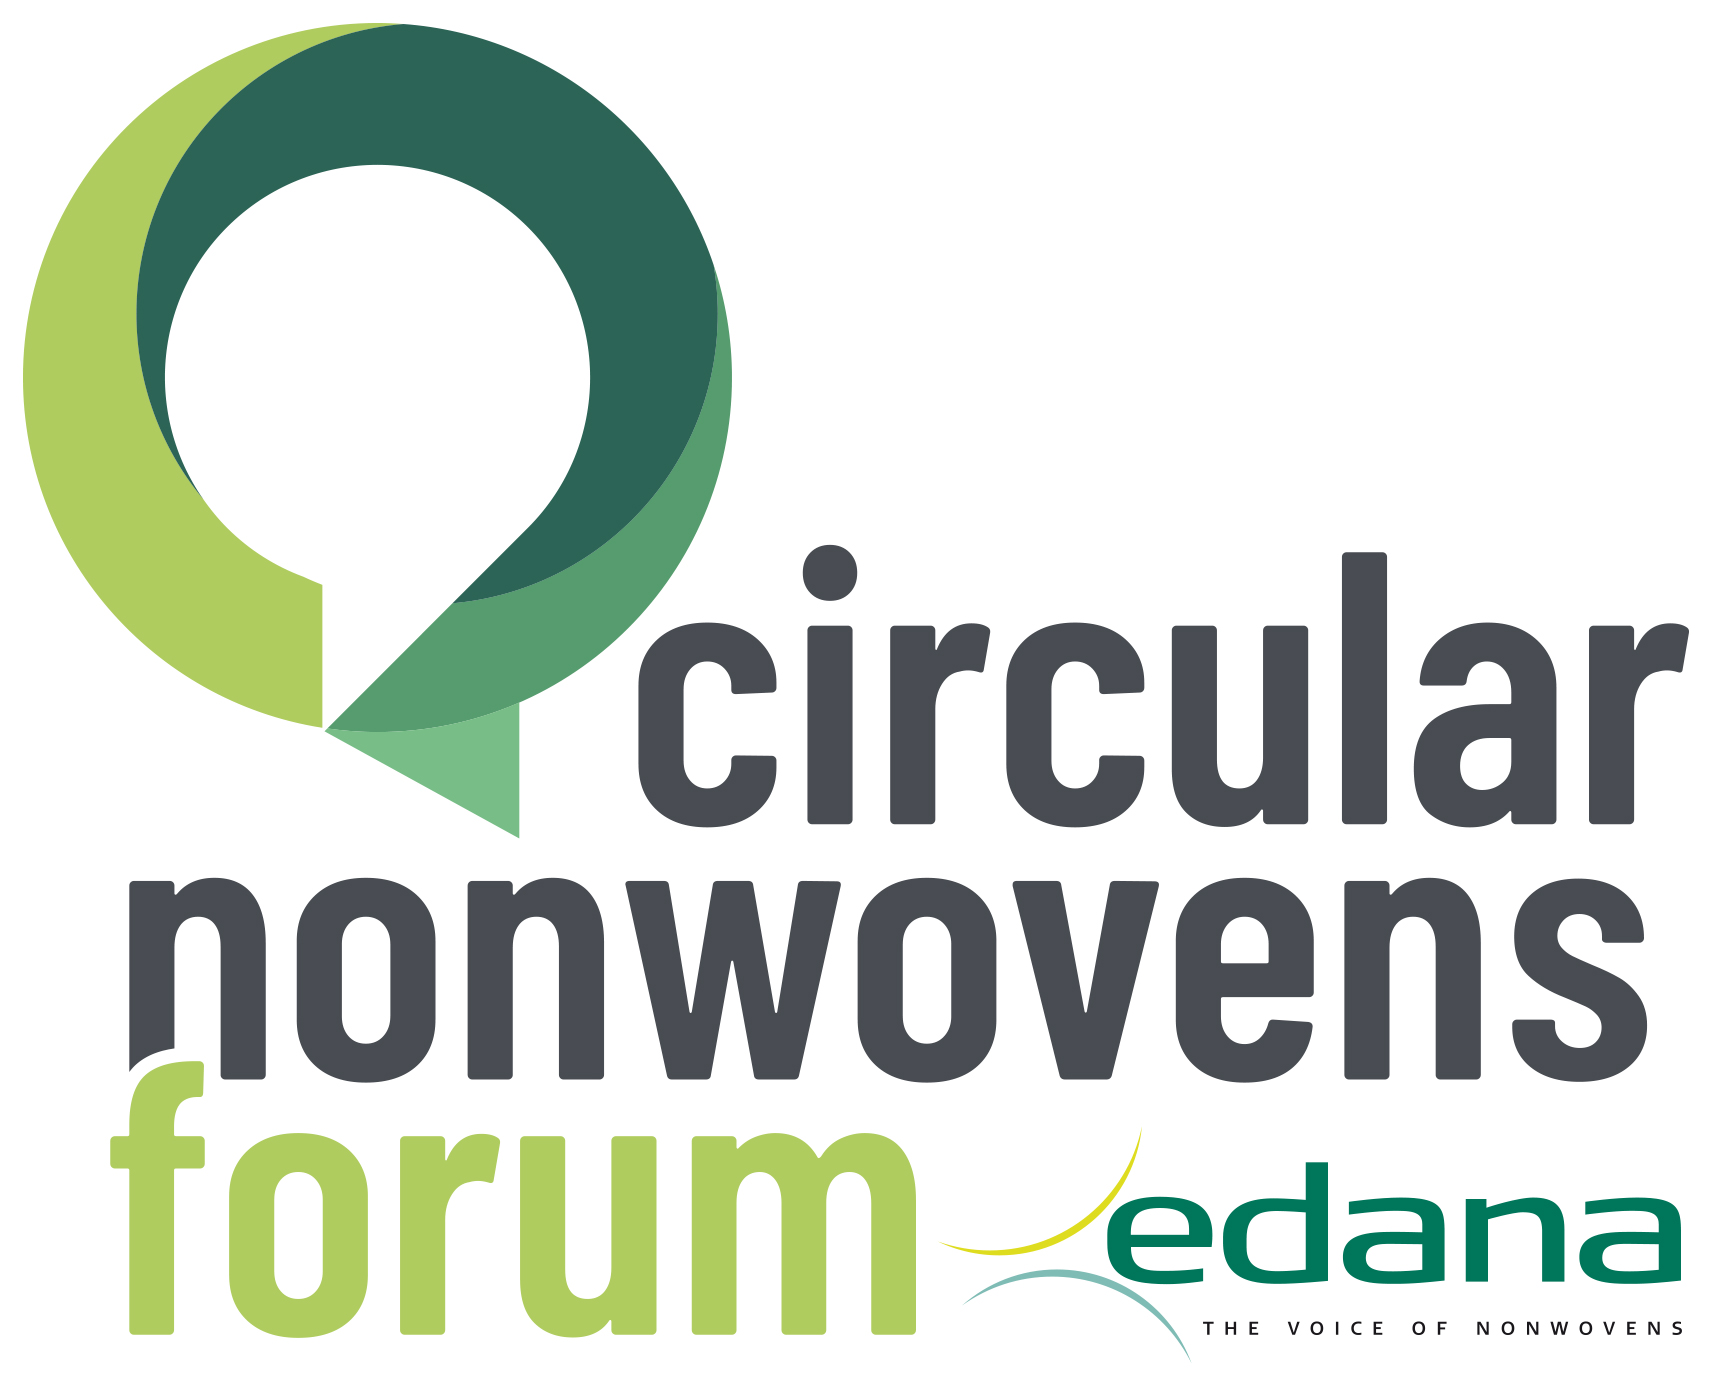 First edition of Nonwovens Circular Forum closes to great aclaim.